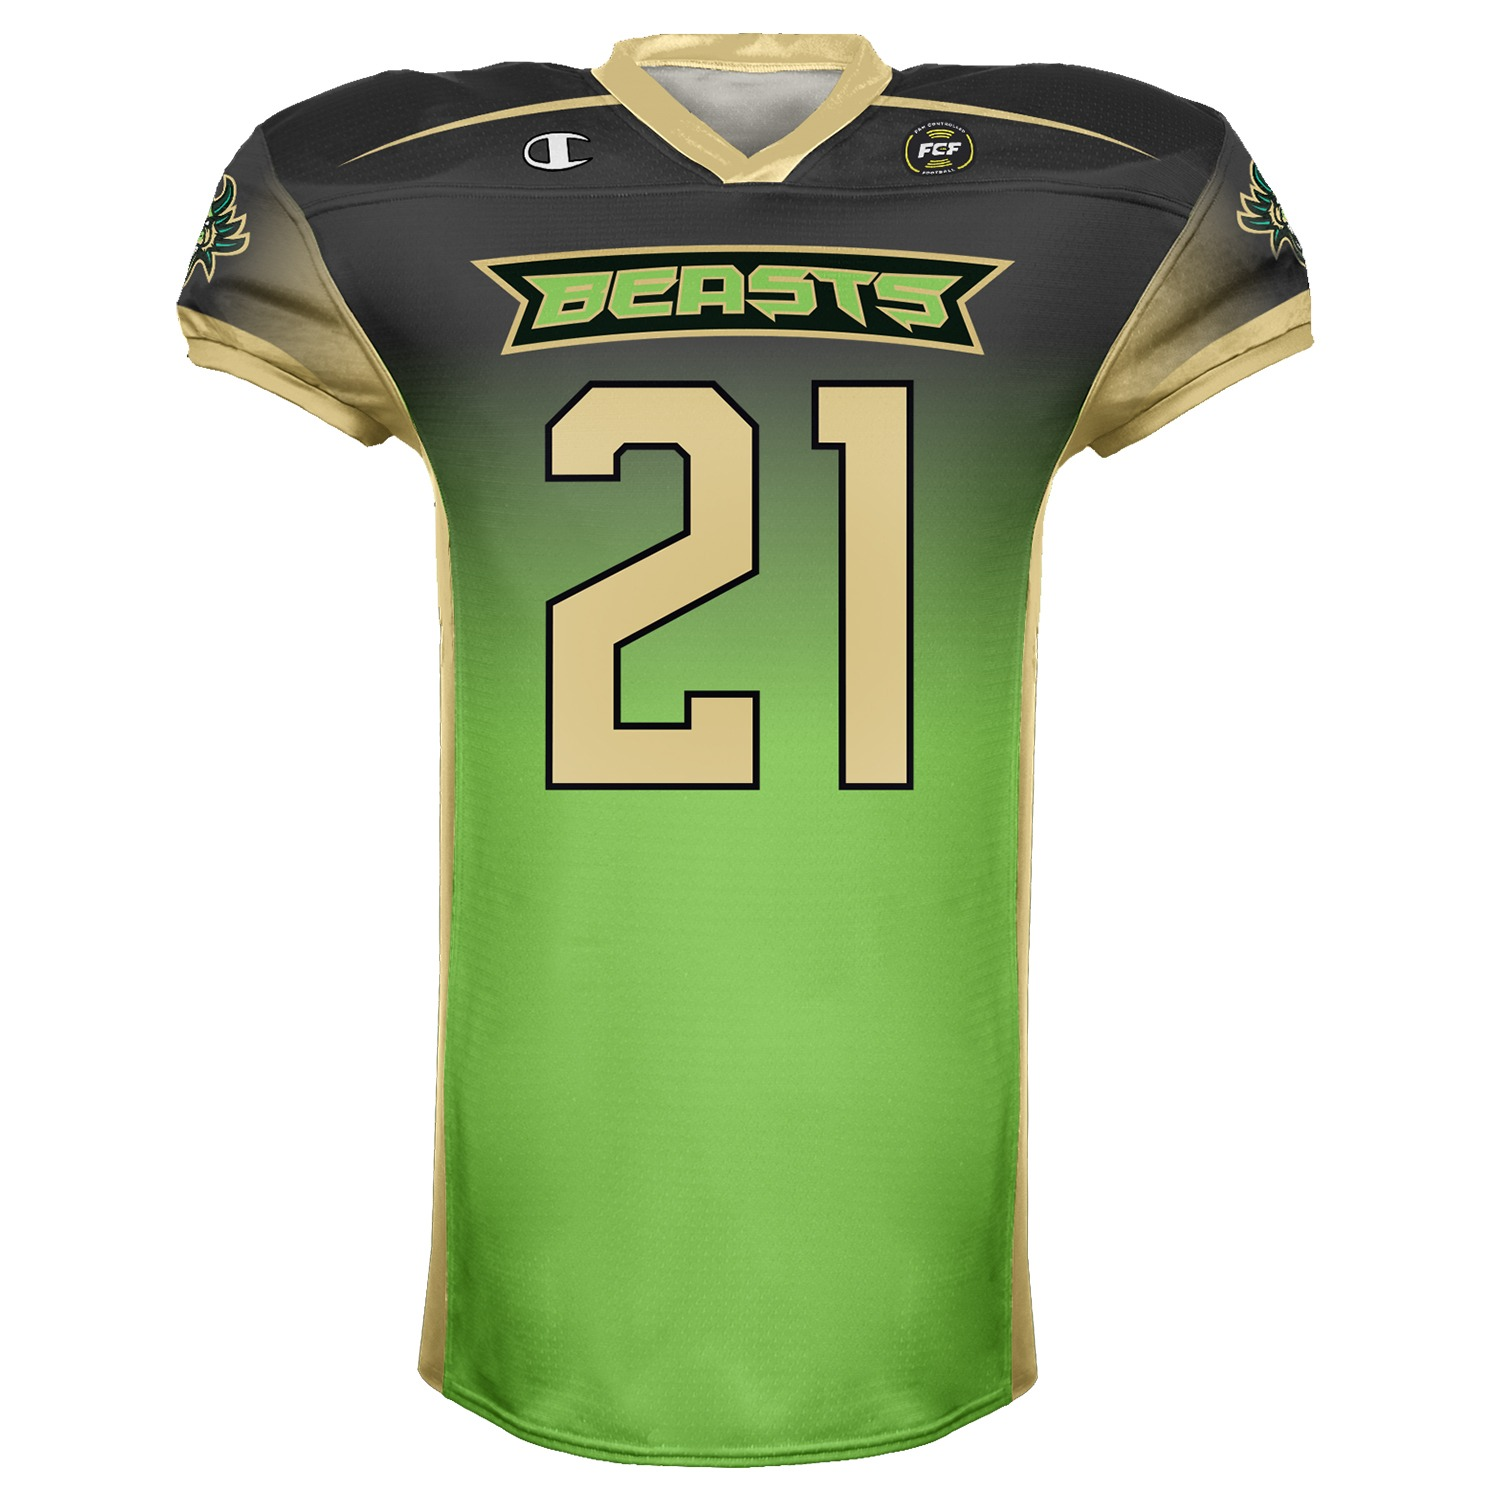 Beasts Authentic Champion Jersey product image (1)